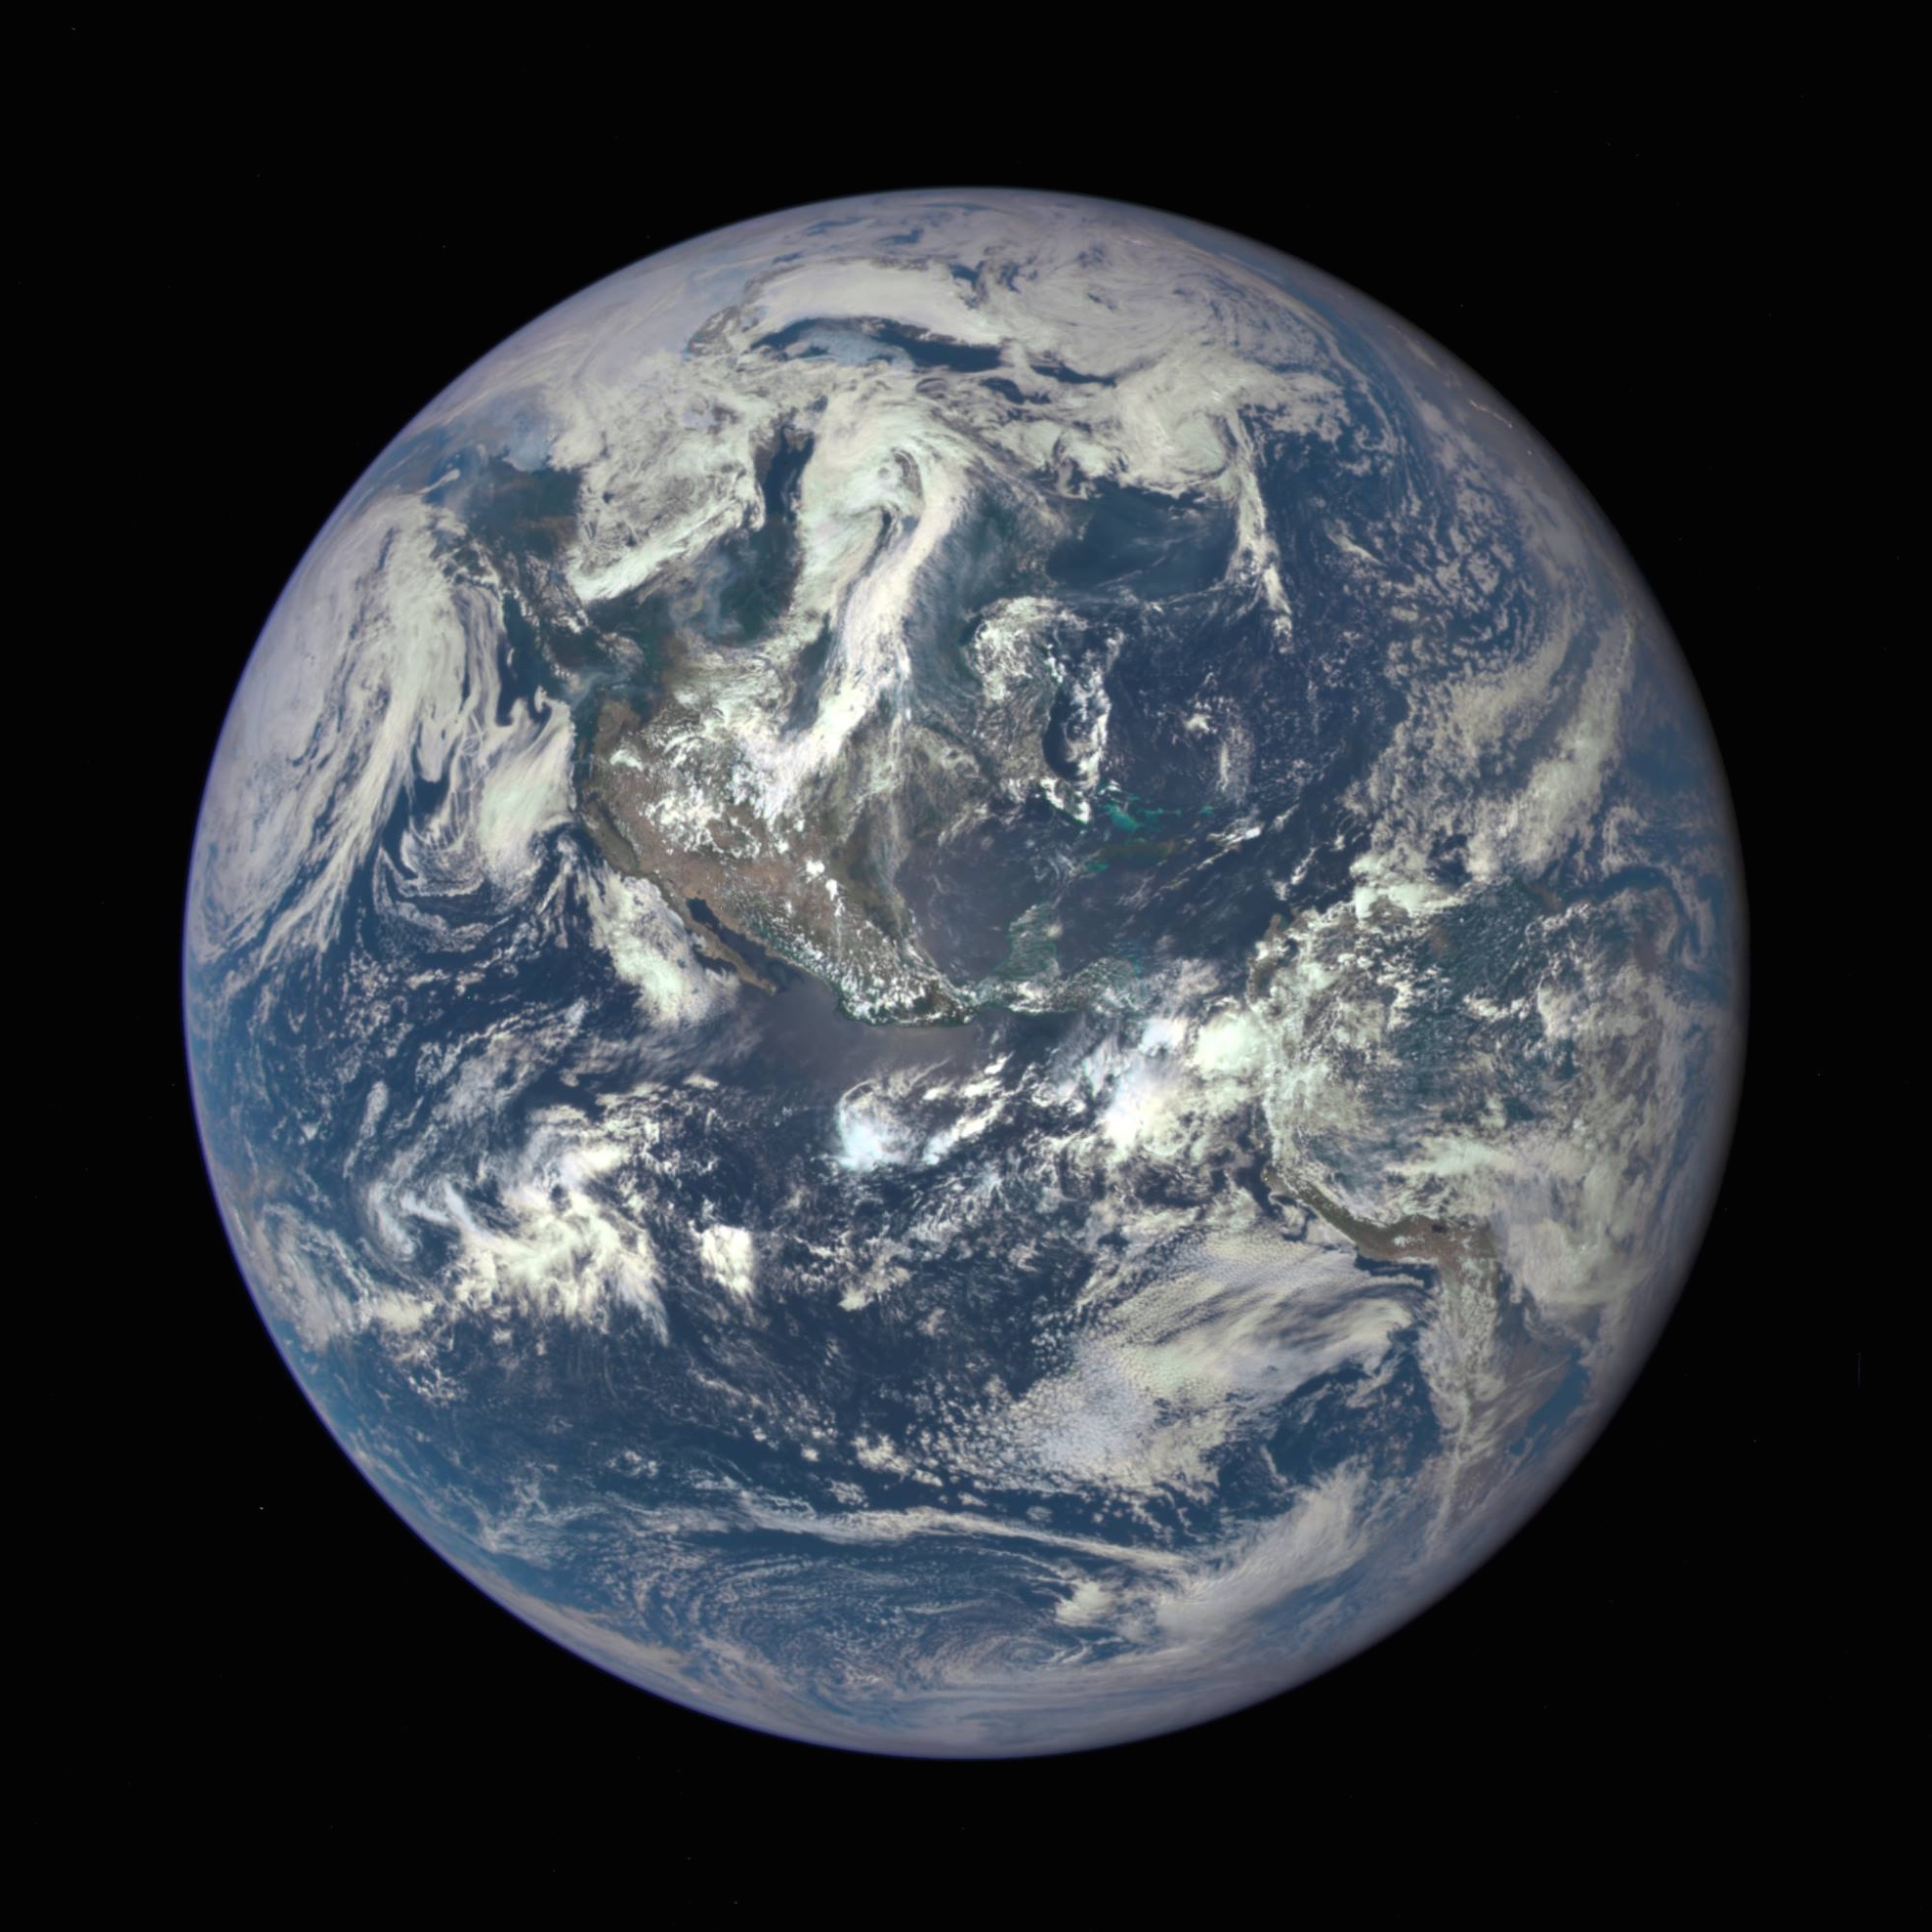 This morning I want to share this incredible image that was released yesterday by  NASA . For the first time ever, we can see an Overview of the entire sunlit side of the Earth from one million miles away. By combining three separate photographs taken by the Deep Space Climate Observatory satellite, NASA was able to create this stunning image.  I am hopeful that this satellite's ability to capture images and data of our planet will continue to inspire and inform us with perspectives we could have never before considered.